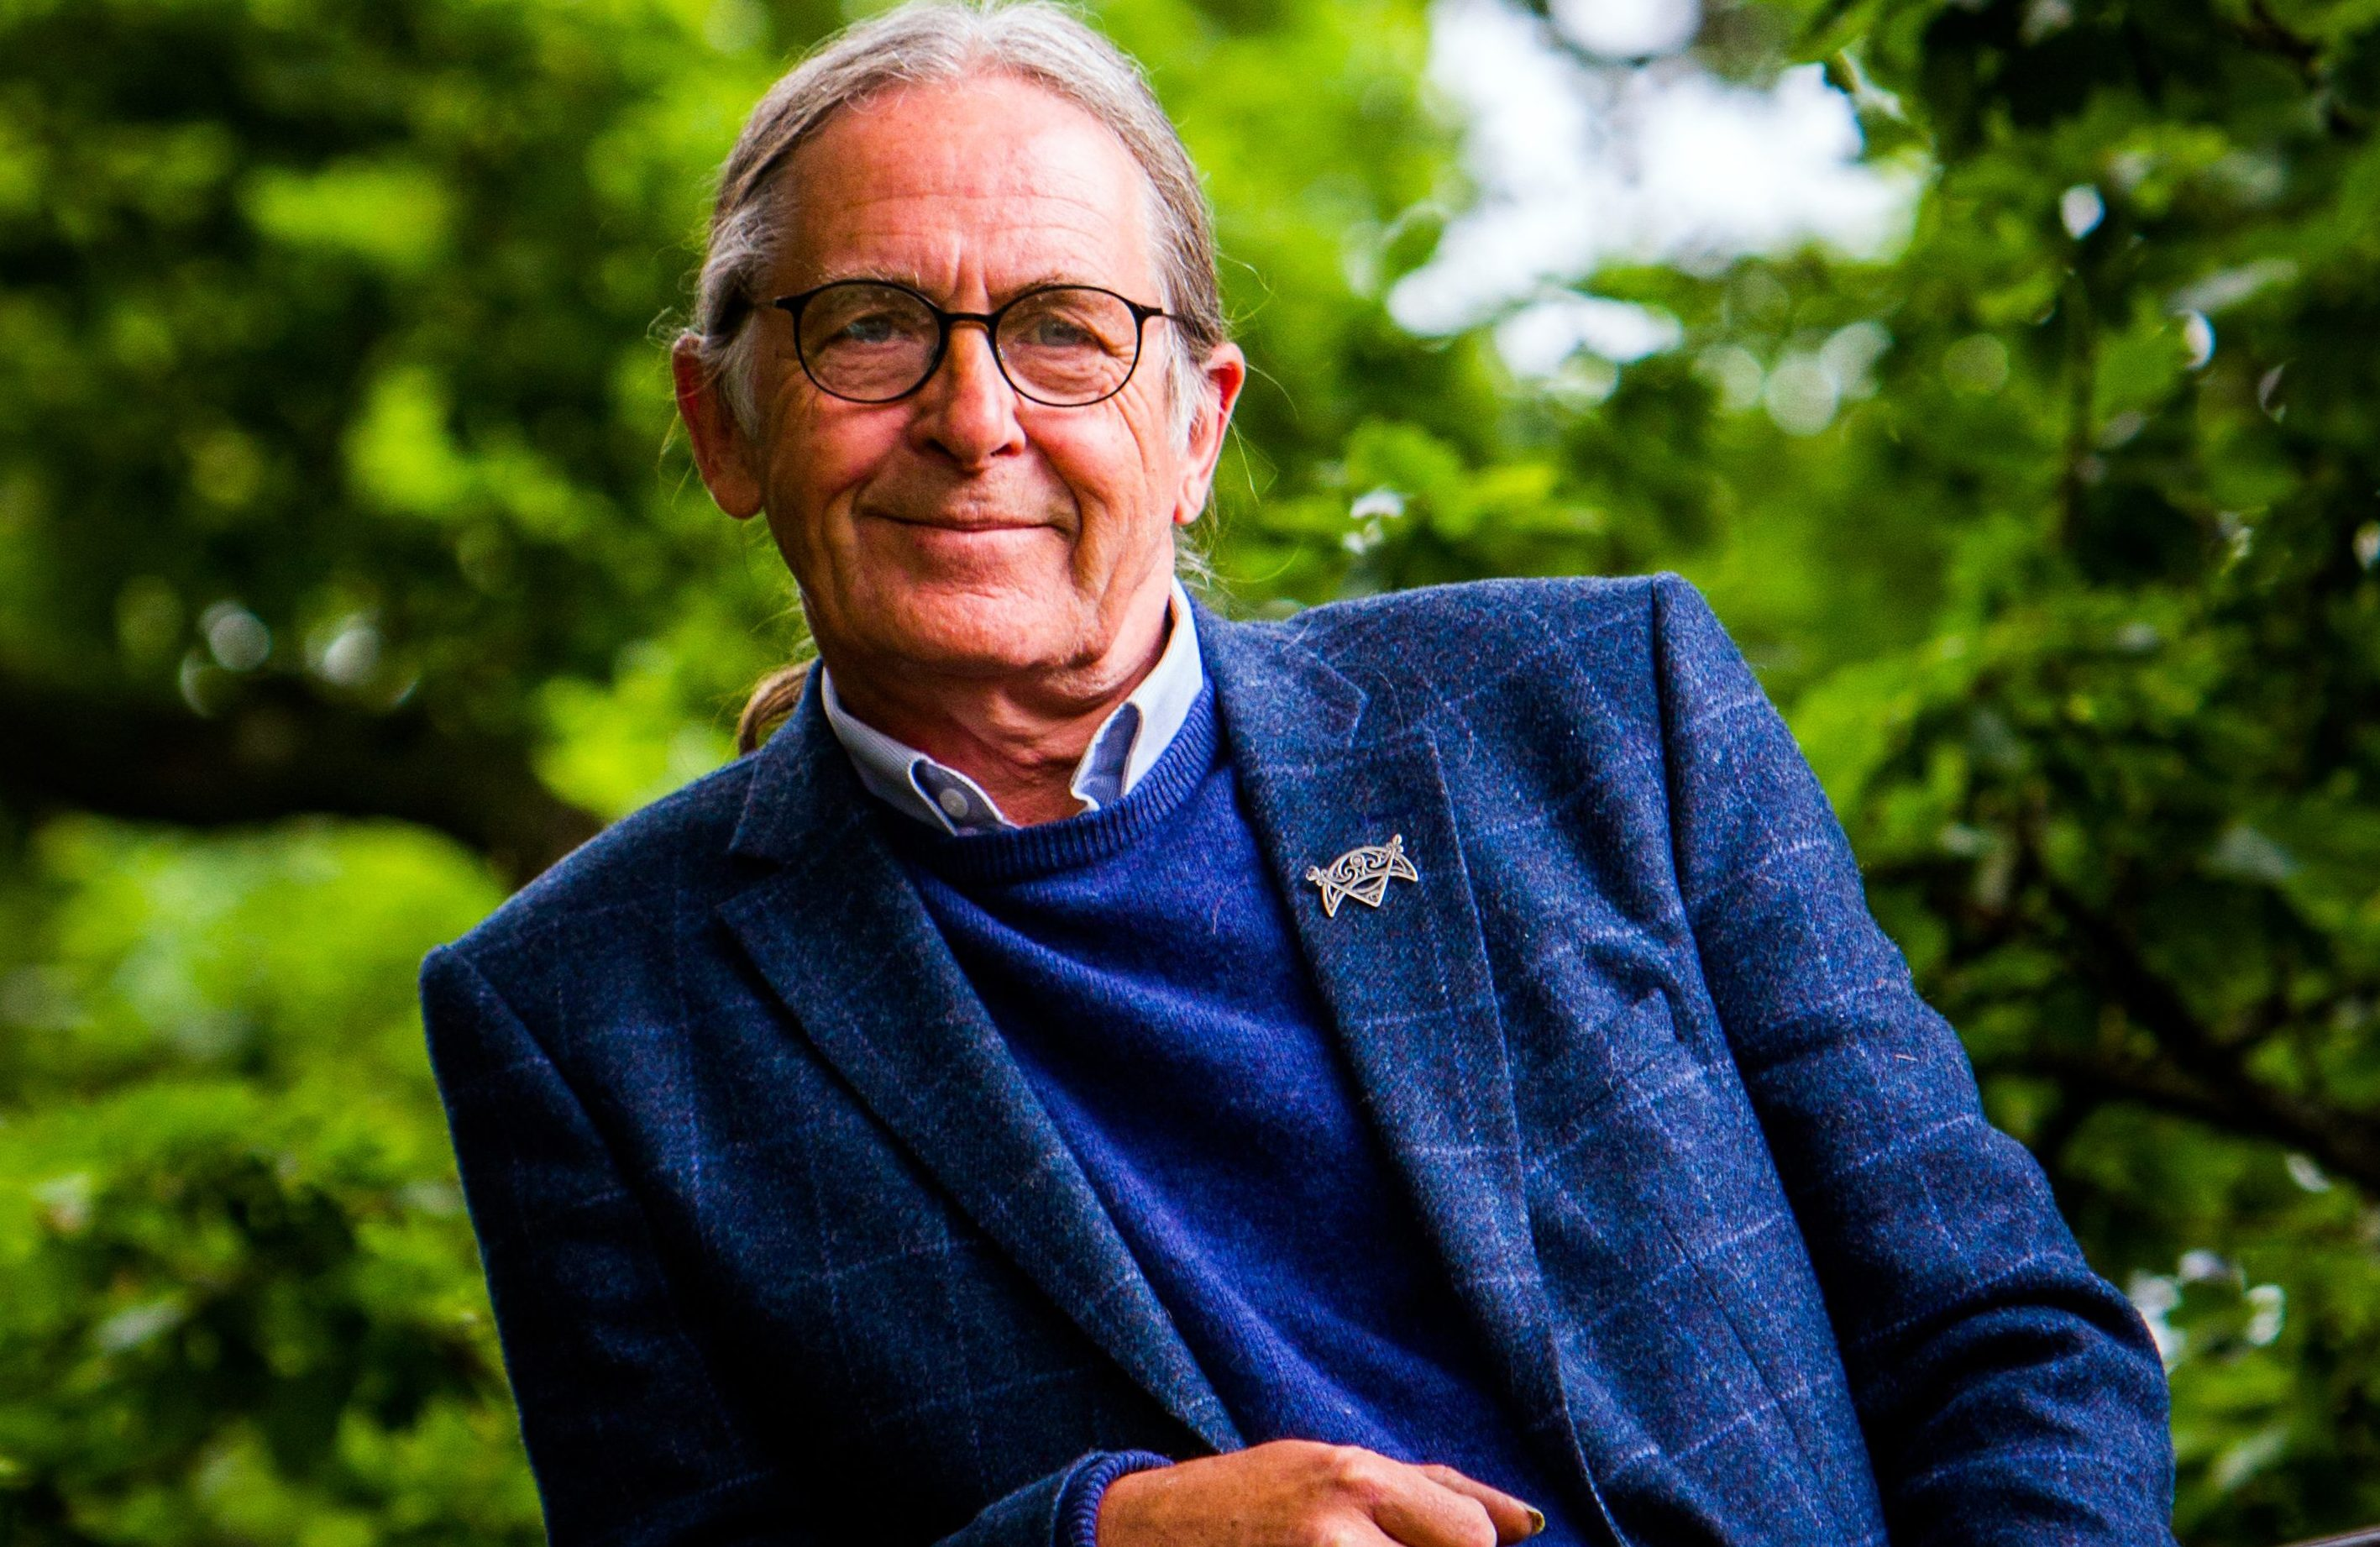 Renowned musician Dougie MacLean is looking forward to this year's Perthshire Amber festival.